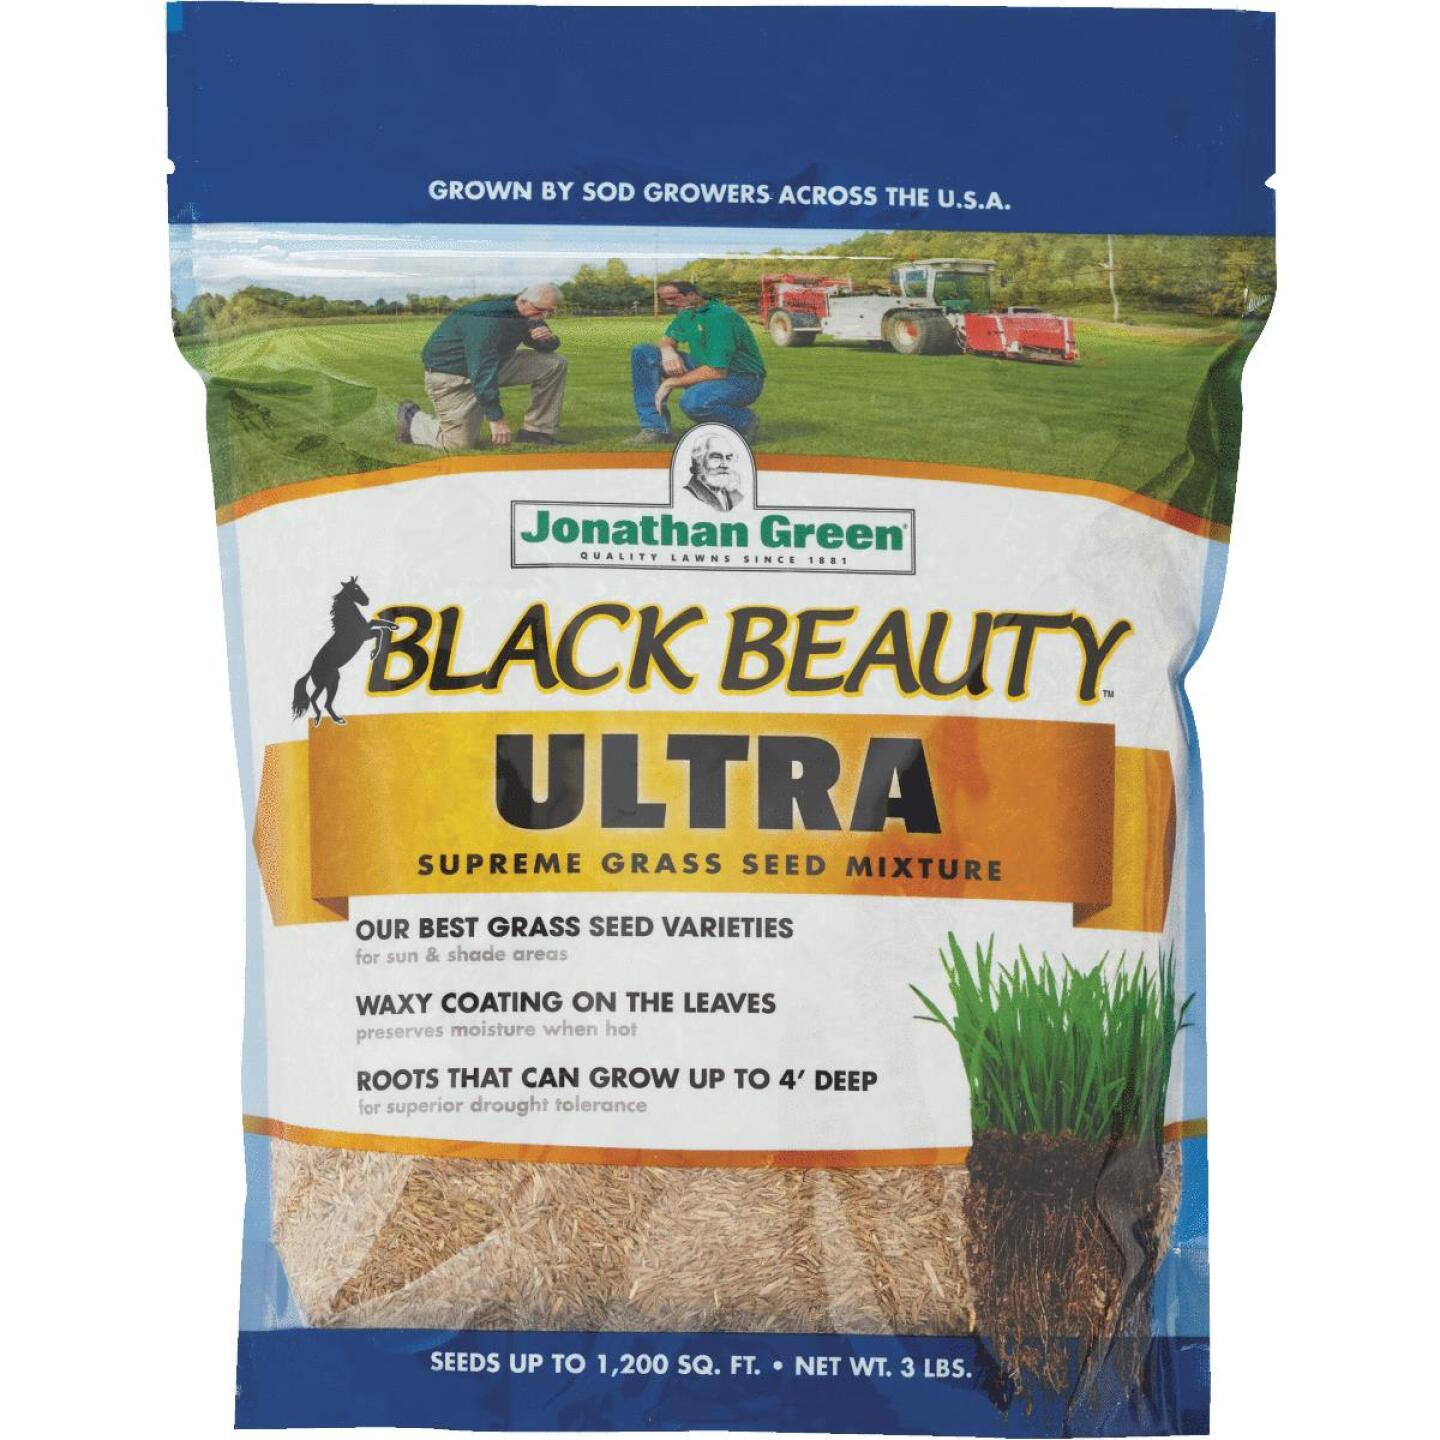 Jonathan Green Black Beauty Ultra 3 Lb. 600 Sq. Ft. Coverage Tall Fescue Grass Seed Image 1